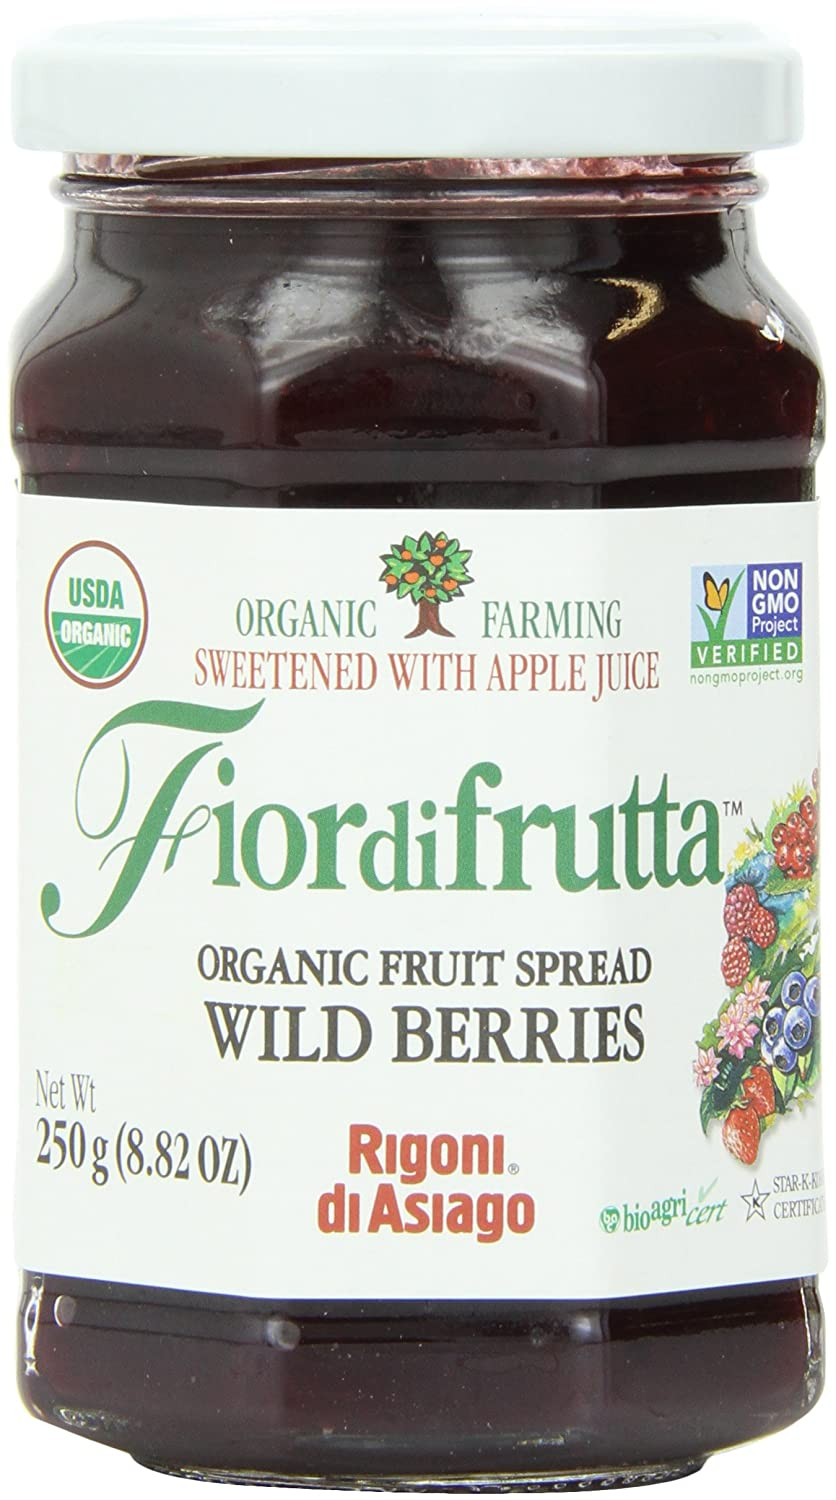 Rigoni Di Asiago Fiordifrutta Organic Fruit Spread, Wildberries, 8.82 Ounce